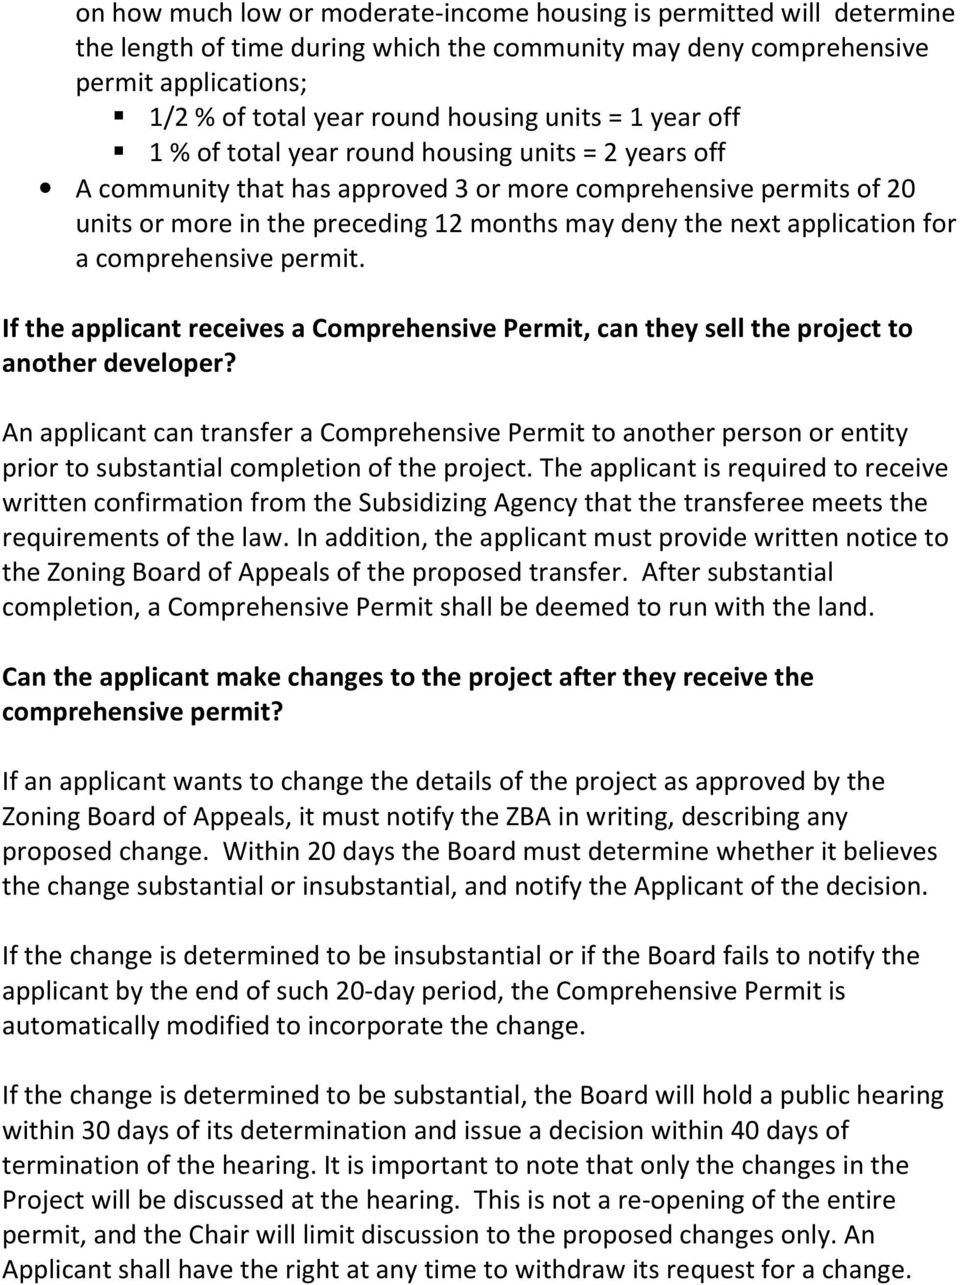 application for a comprehensive permit. If the applicant receives a Comprehensive Permit, can they sell the project to another developer?